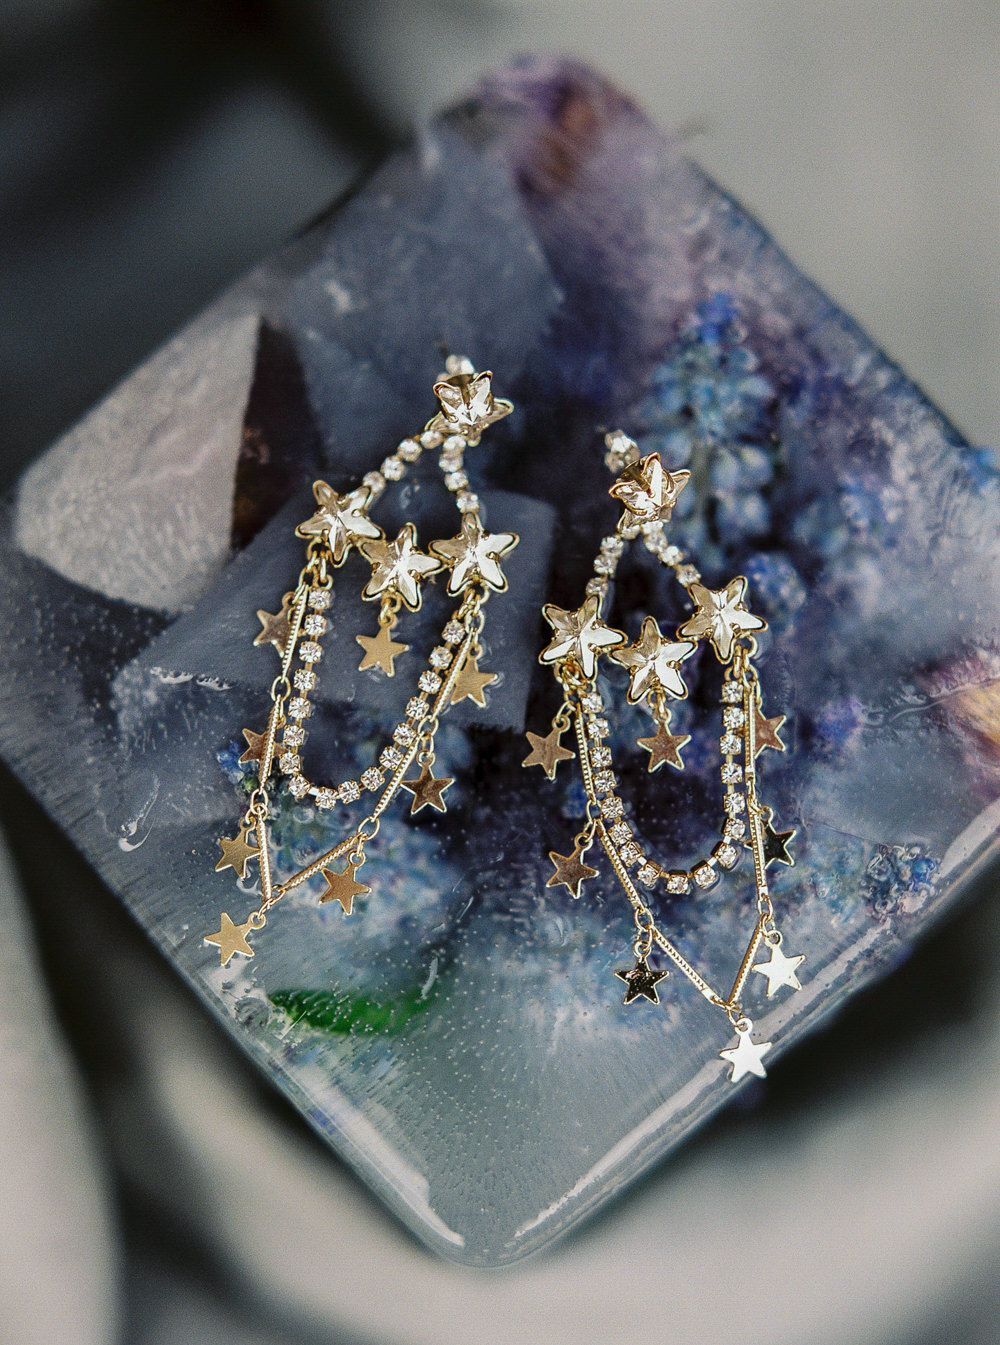 Tilly Thomas Lux Celeste earrings frozen florals